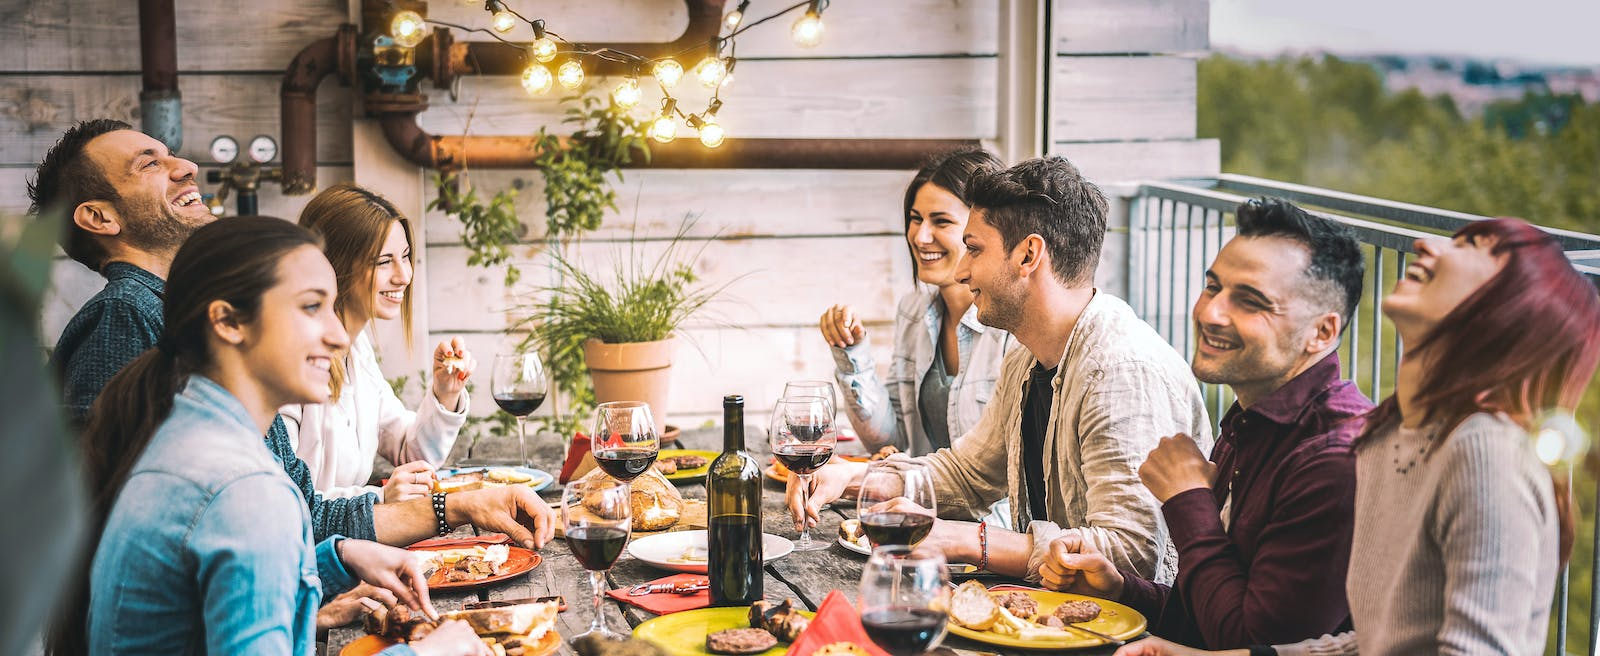 People eating at a table with wine